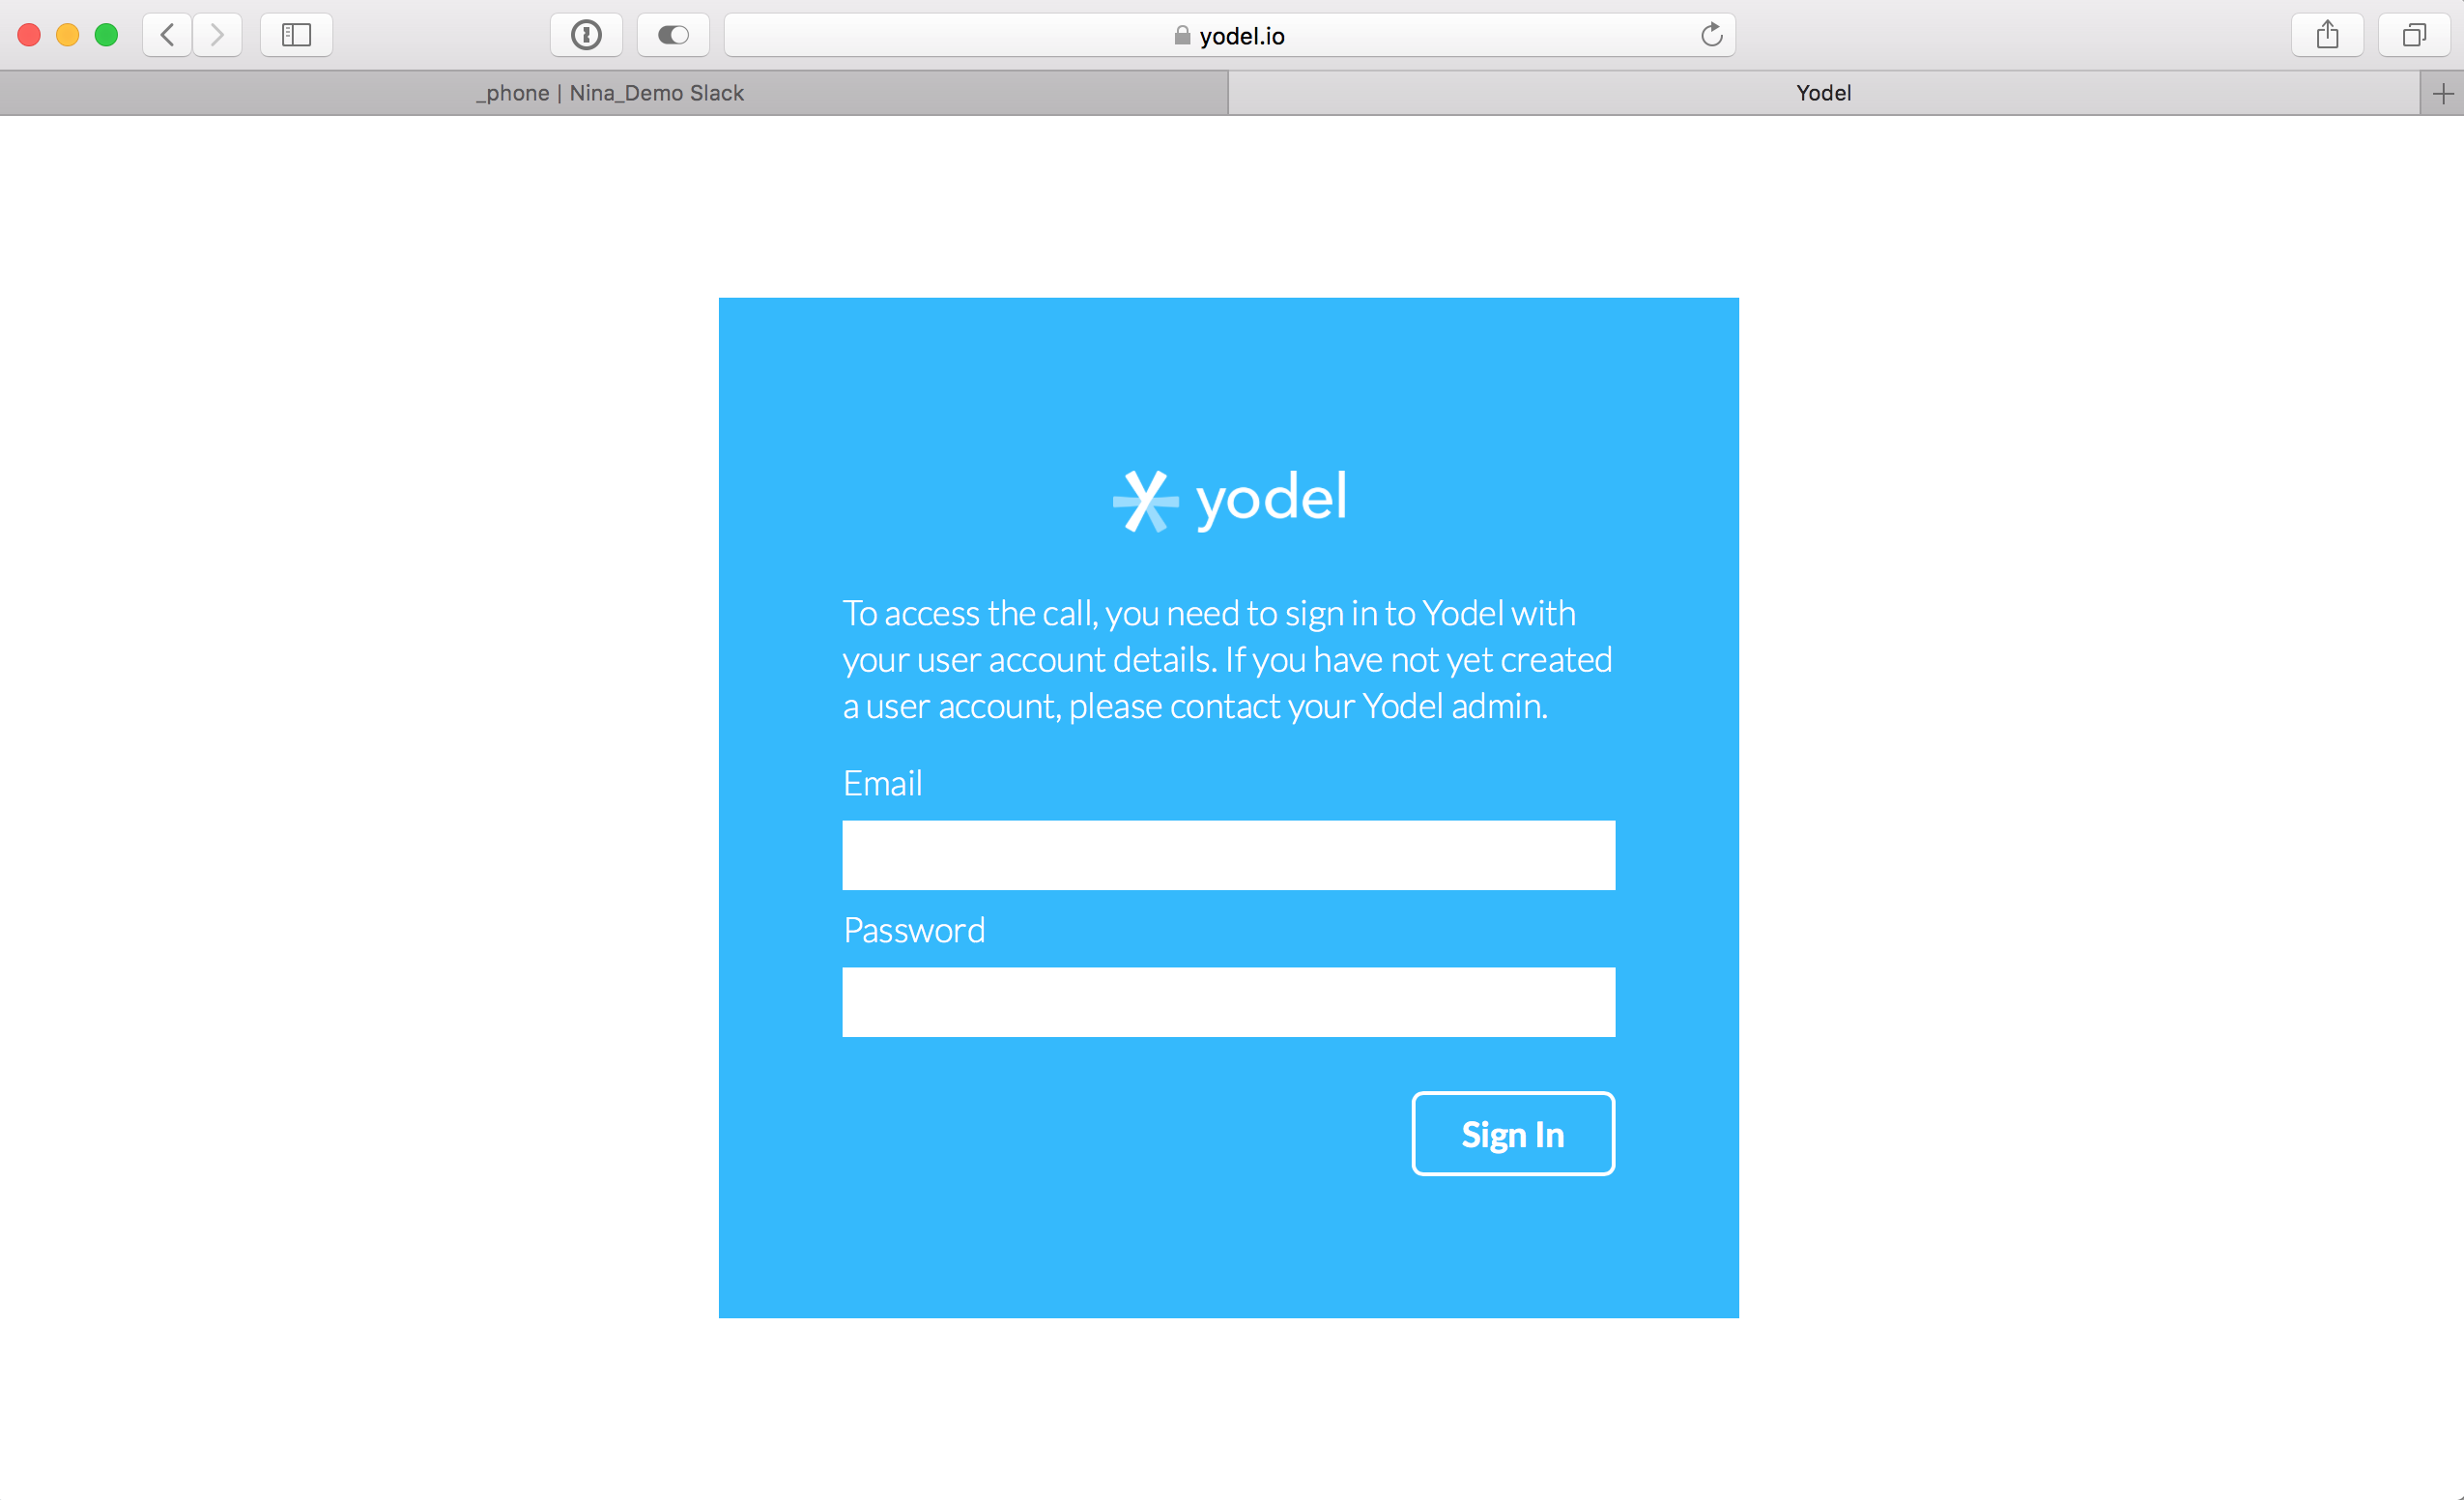 Sign In to Yodel